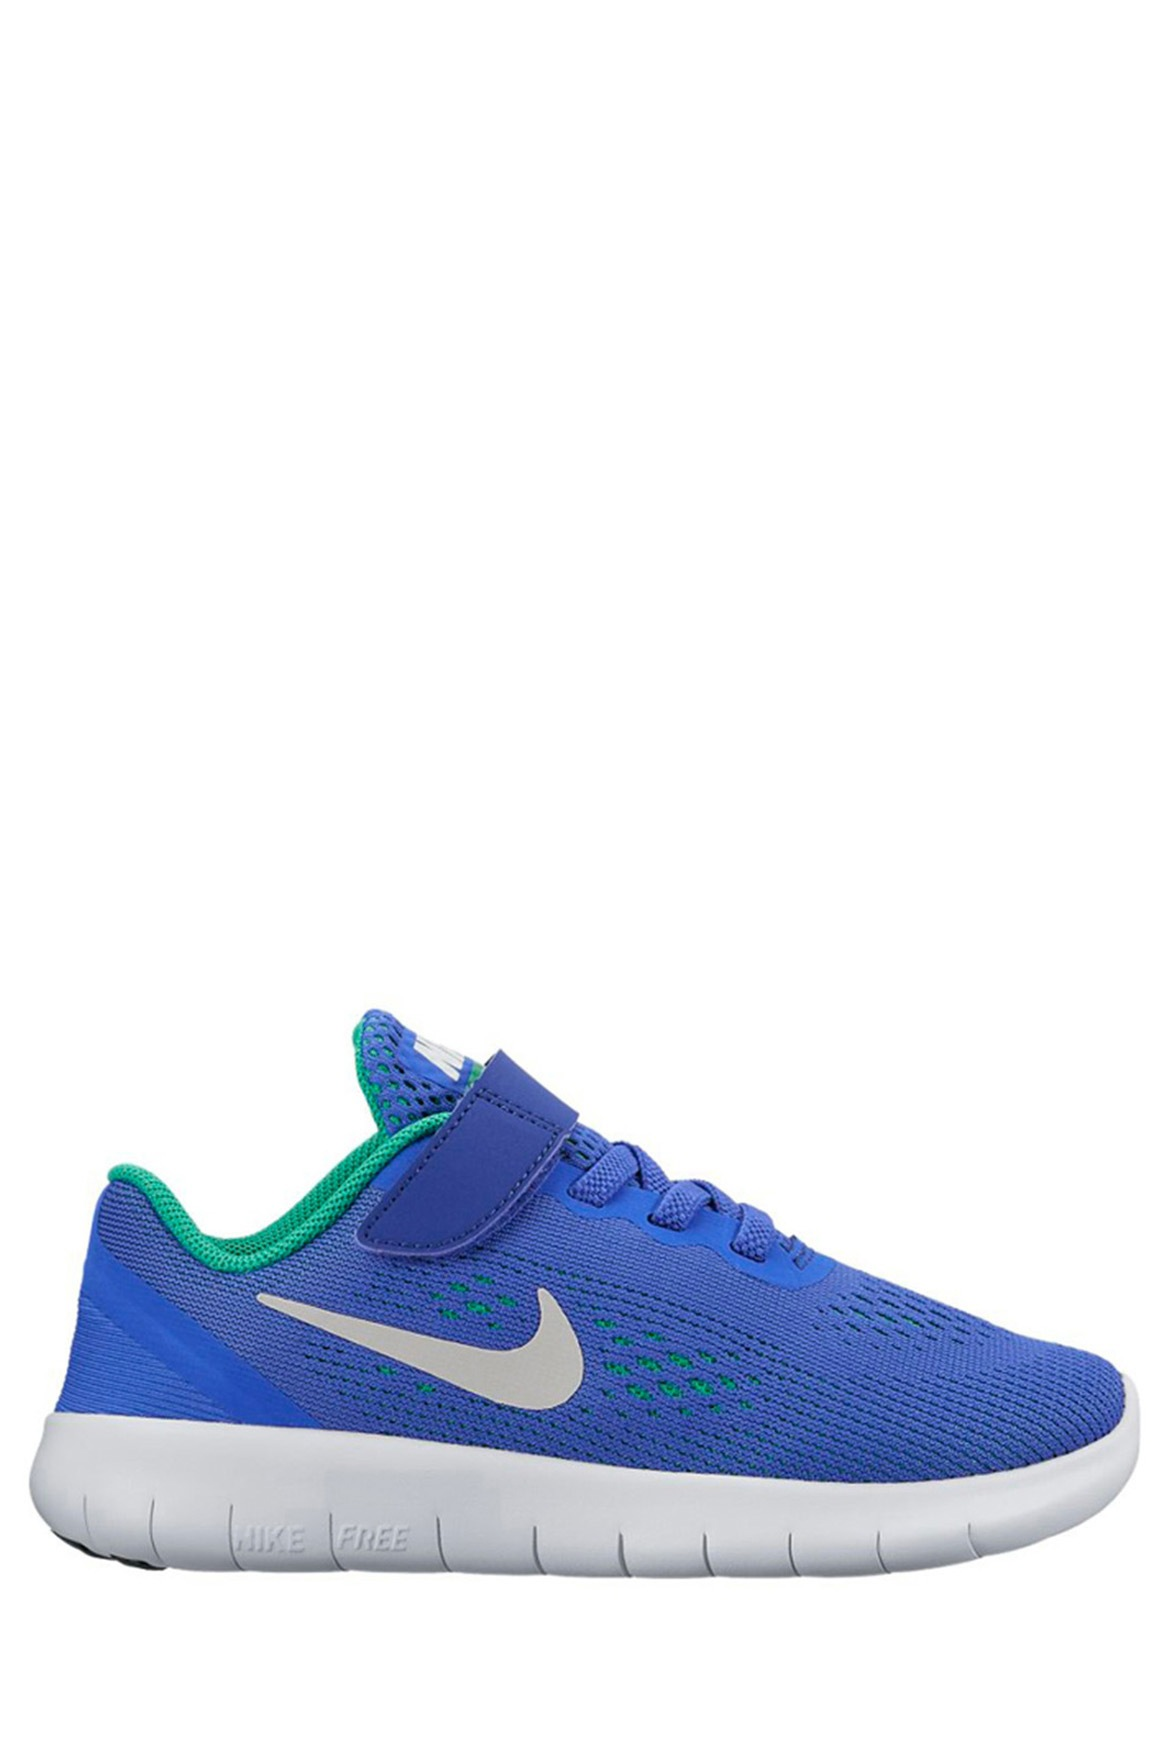 c7b95084273f8 ... hot nike free run ps boys myer online 7b9f9 5e0d4